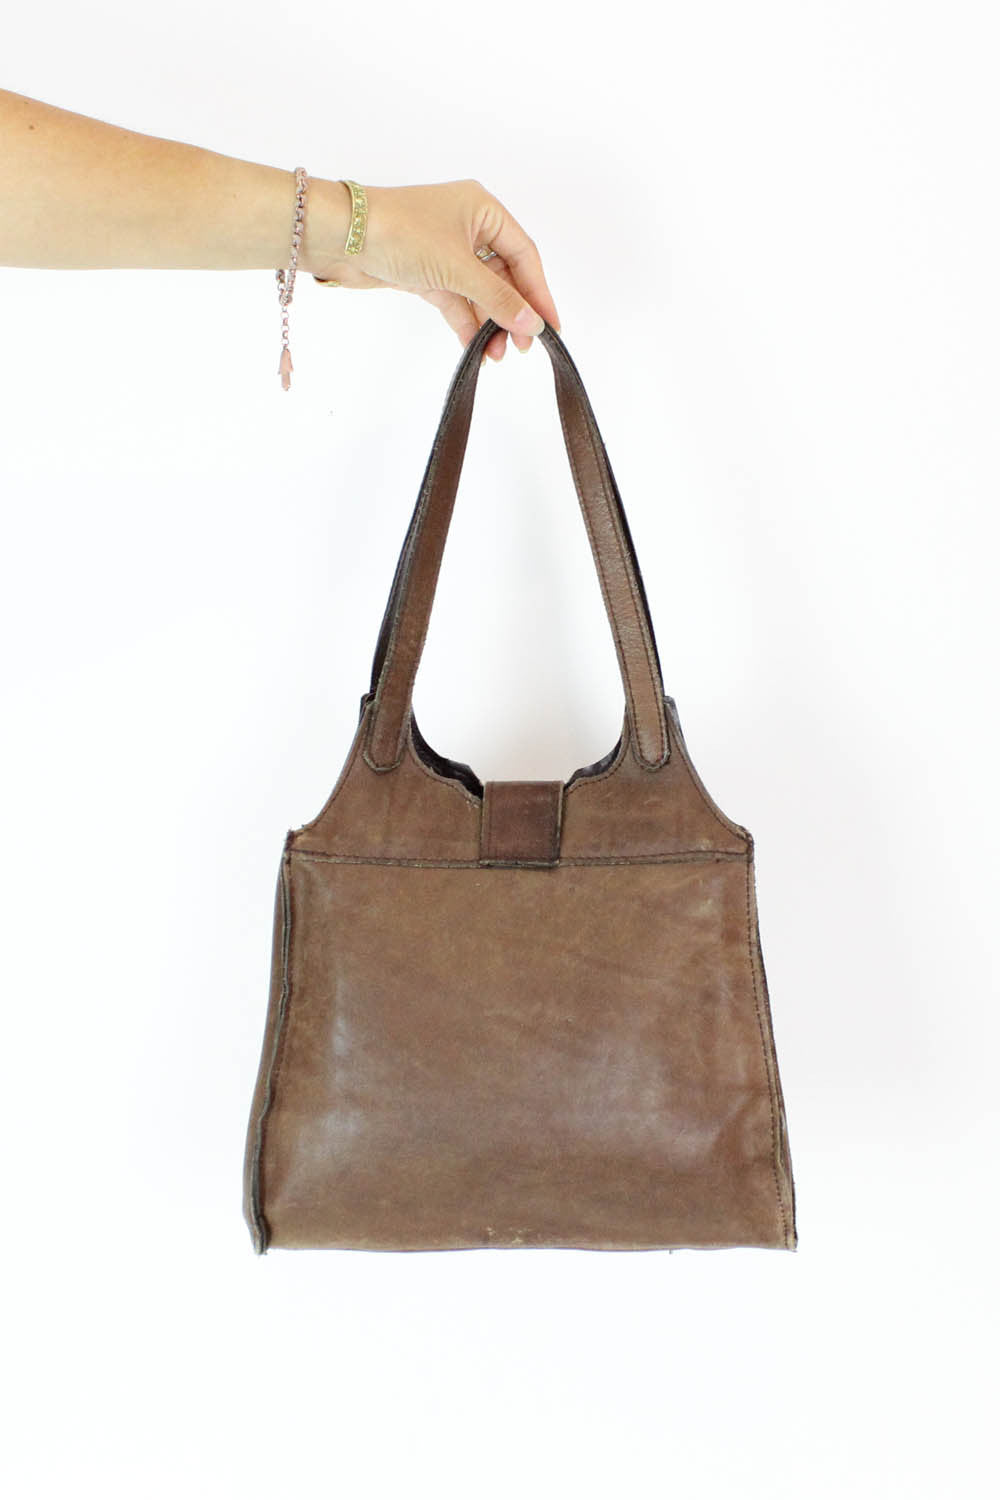 70s Walnut Leather Tote